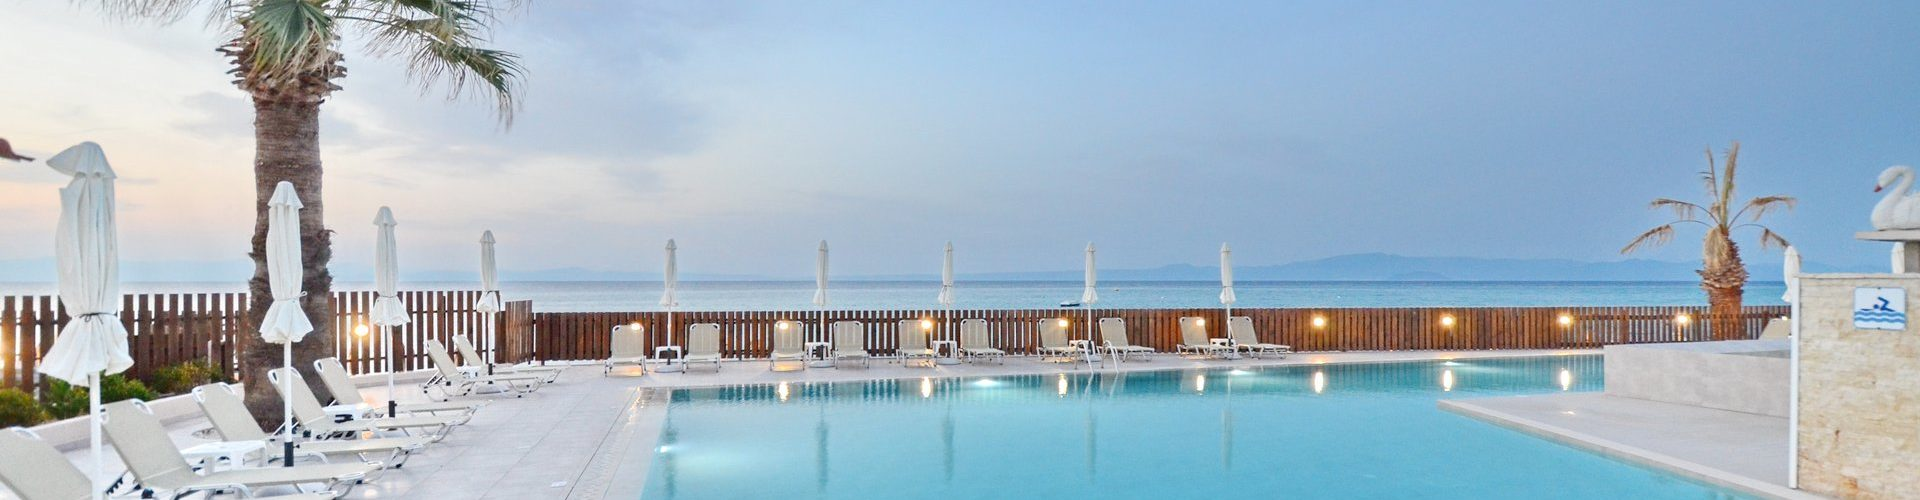 Sousouras Hotel Pool 18